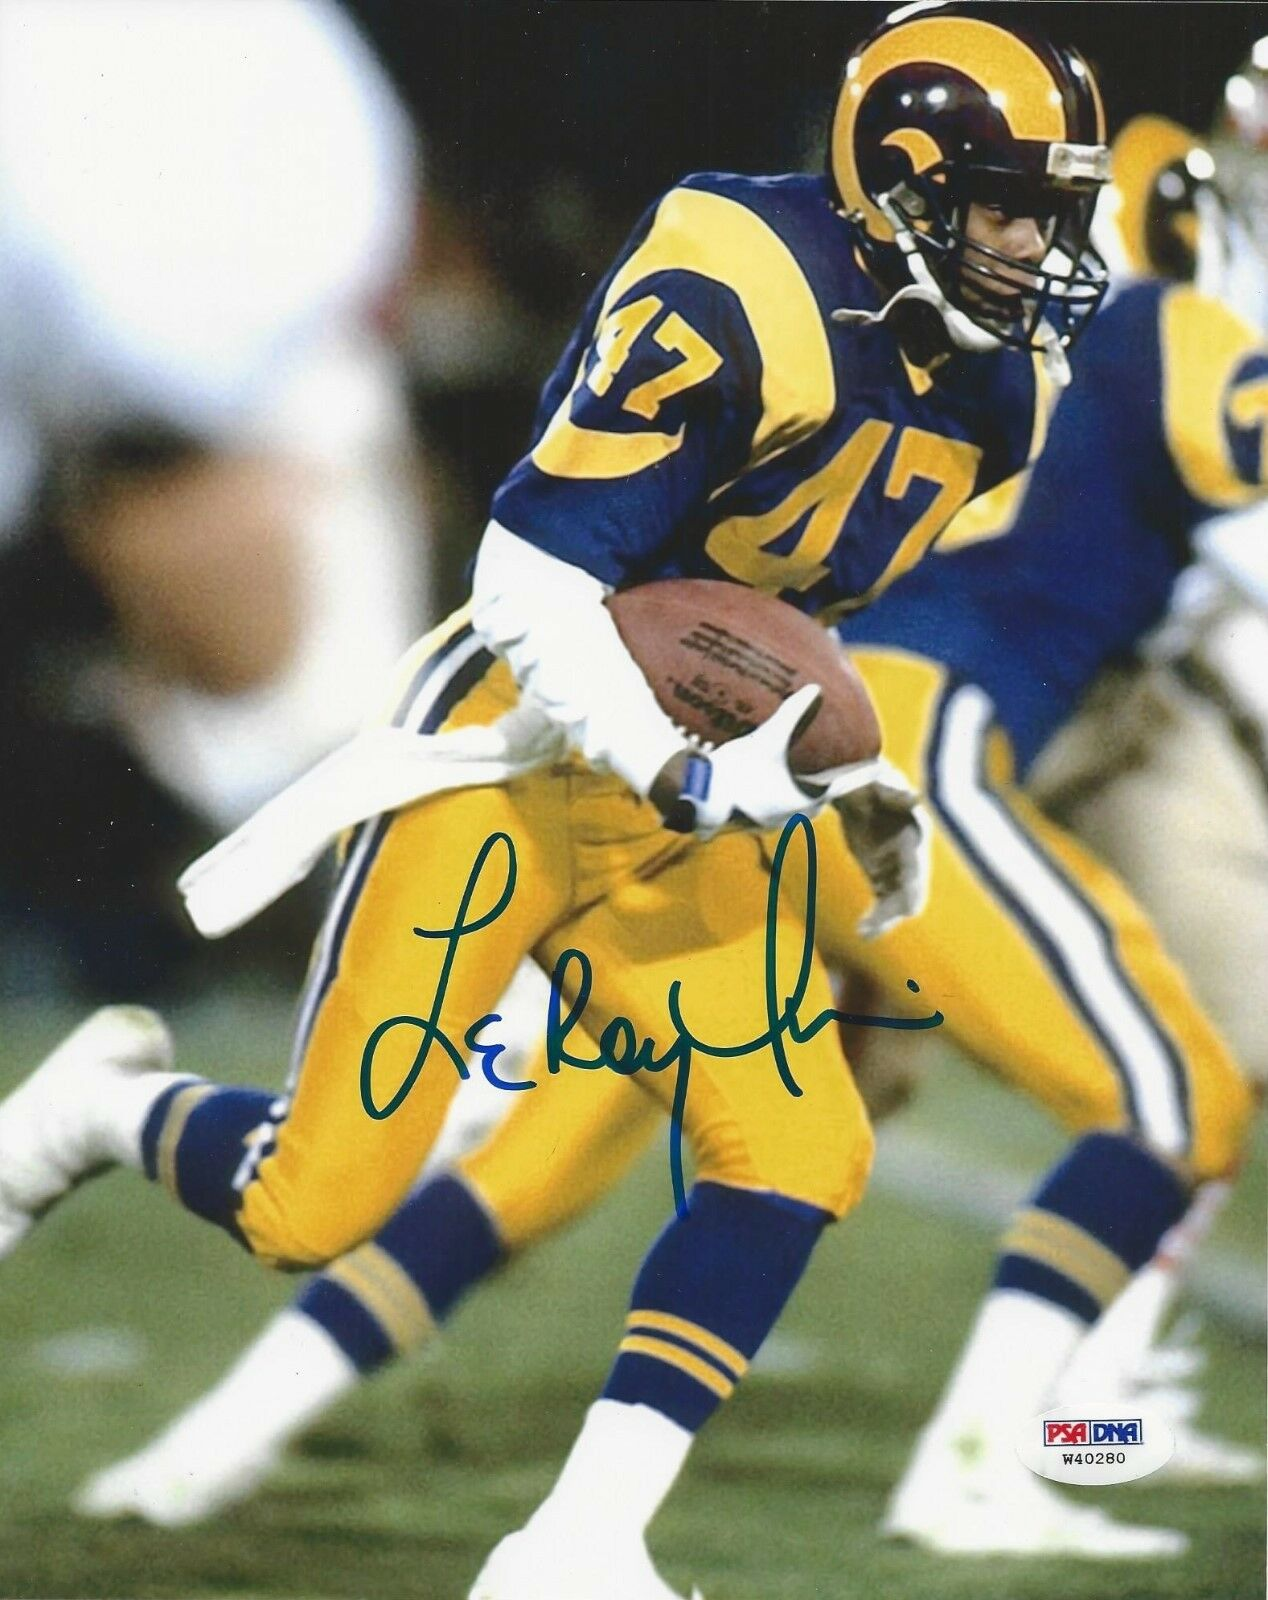 Leroy Irvin Los Angeles Rams Signed 8x10 Photo - PSA/DNA # W40280